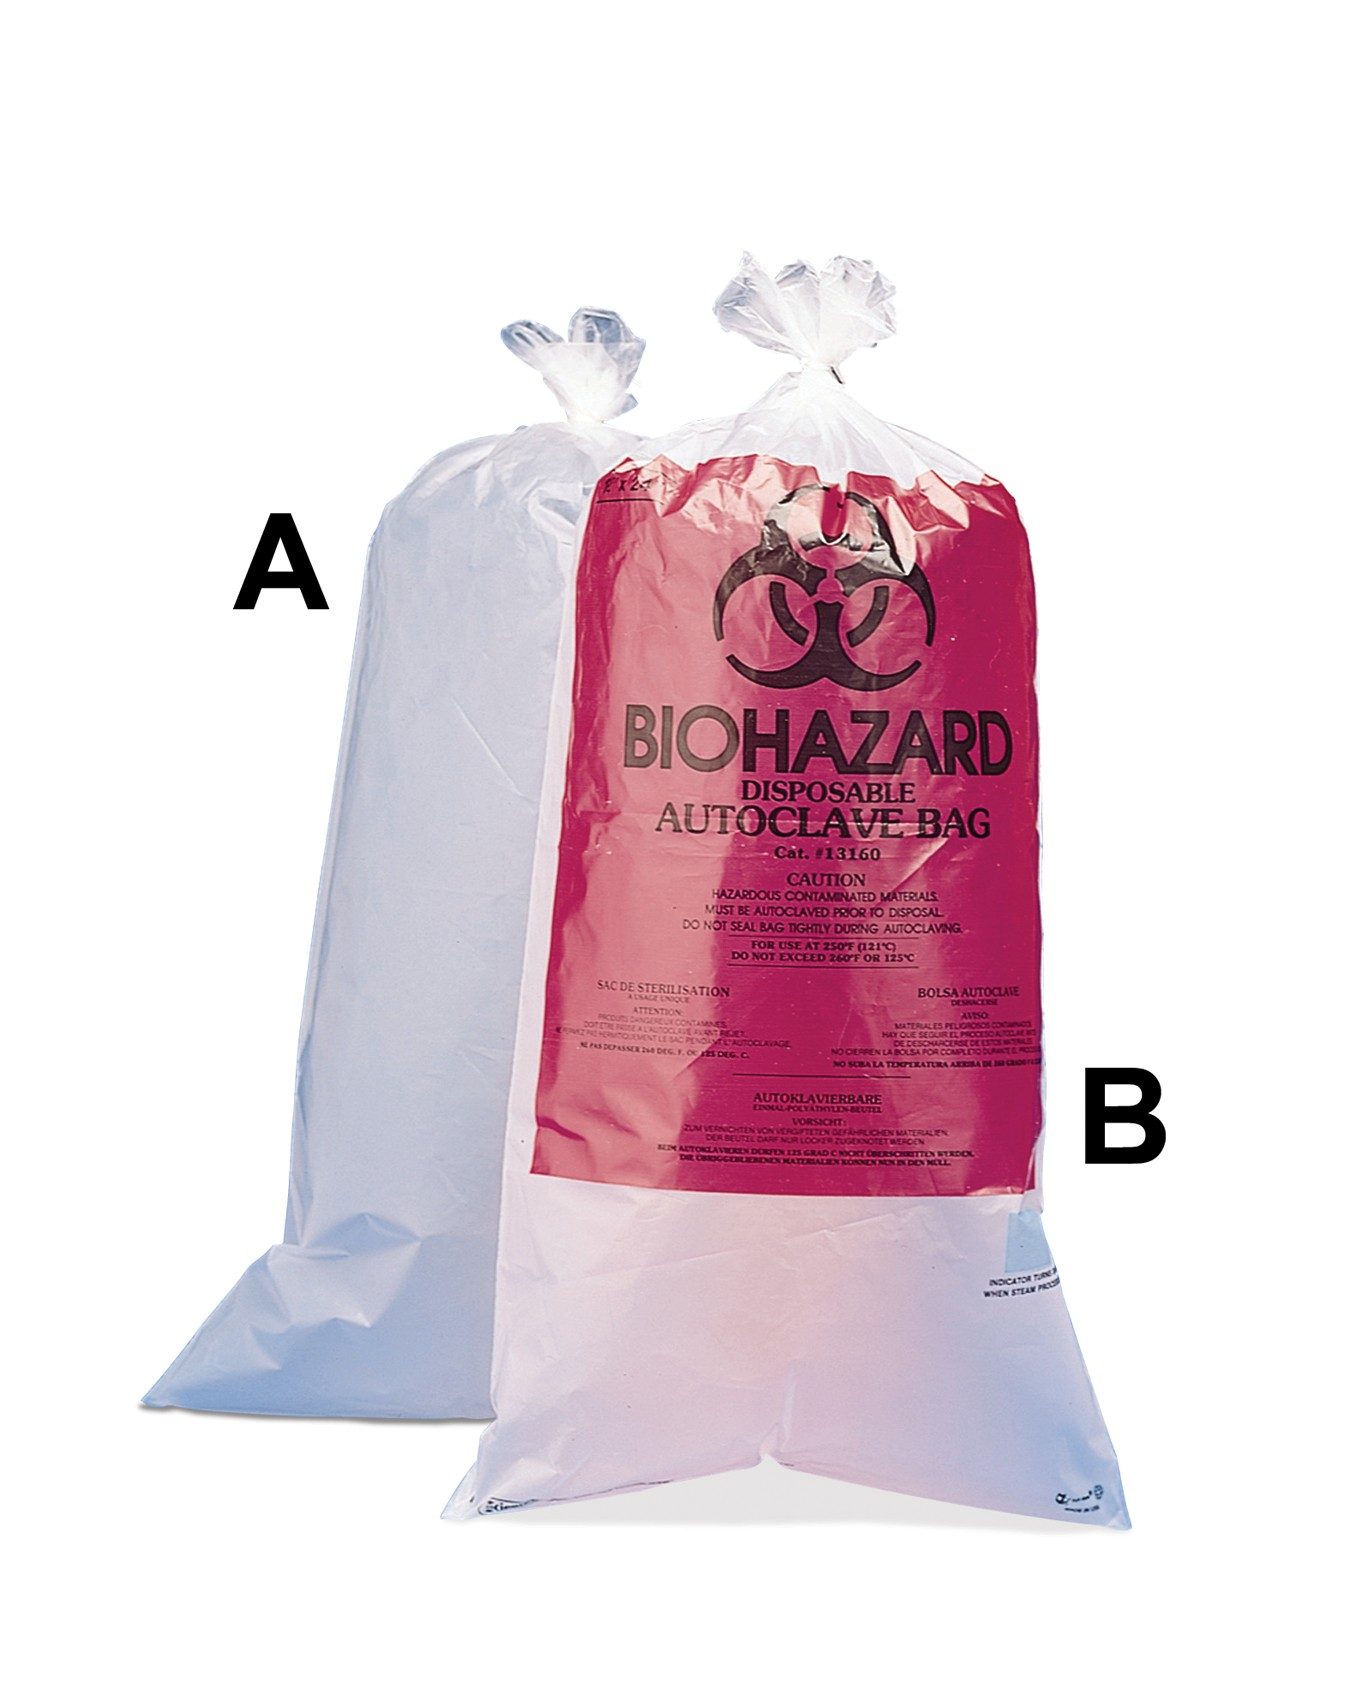 SP Bel-Art Clear Biohazard Disposal Bags with Warning Label; 1.5 mil Thick, 15-20 Gallon Capacity, Polypropylene (Pack of 100)